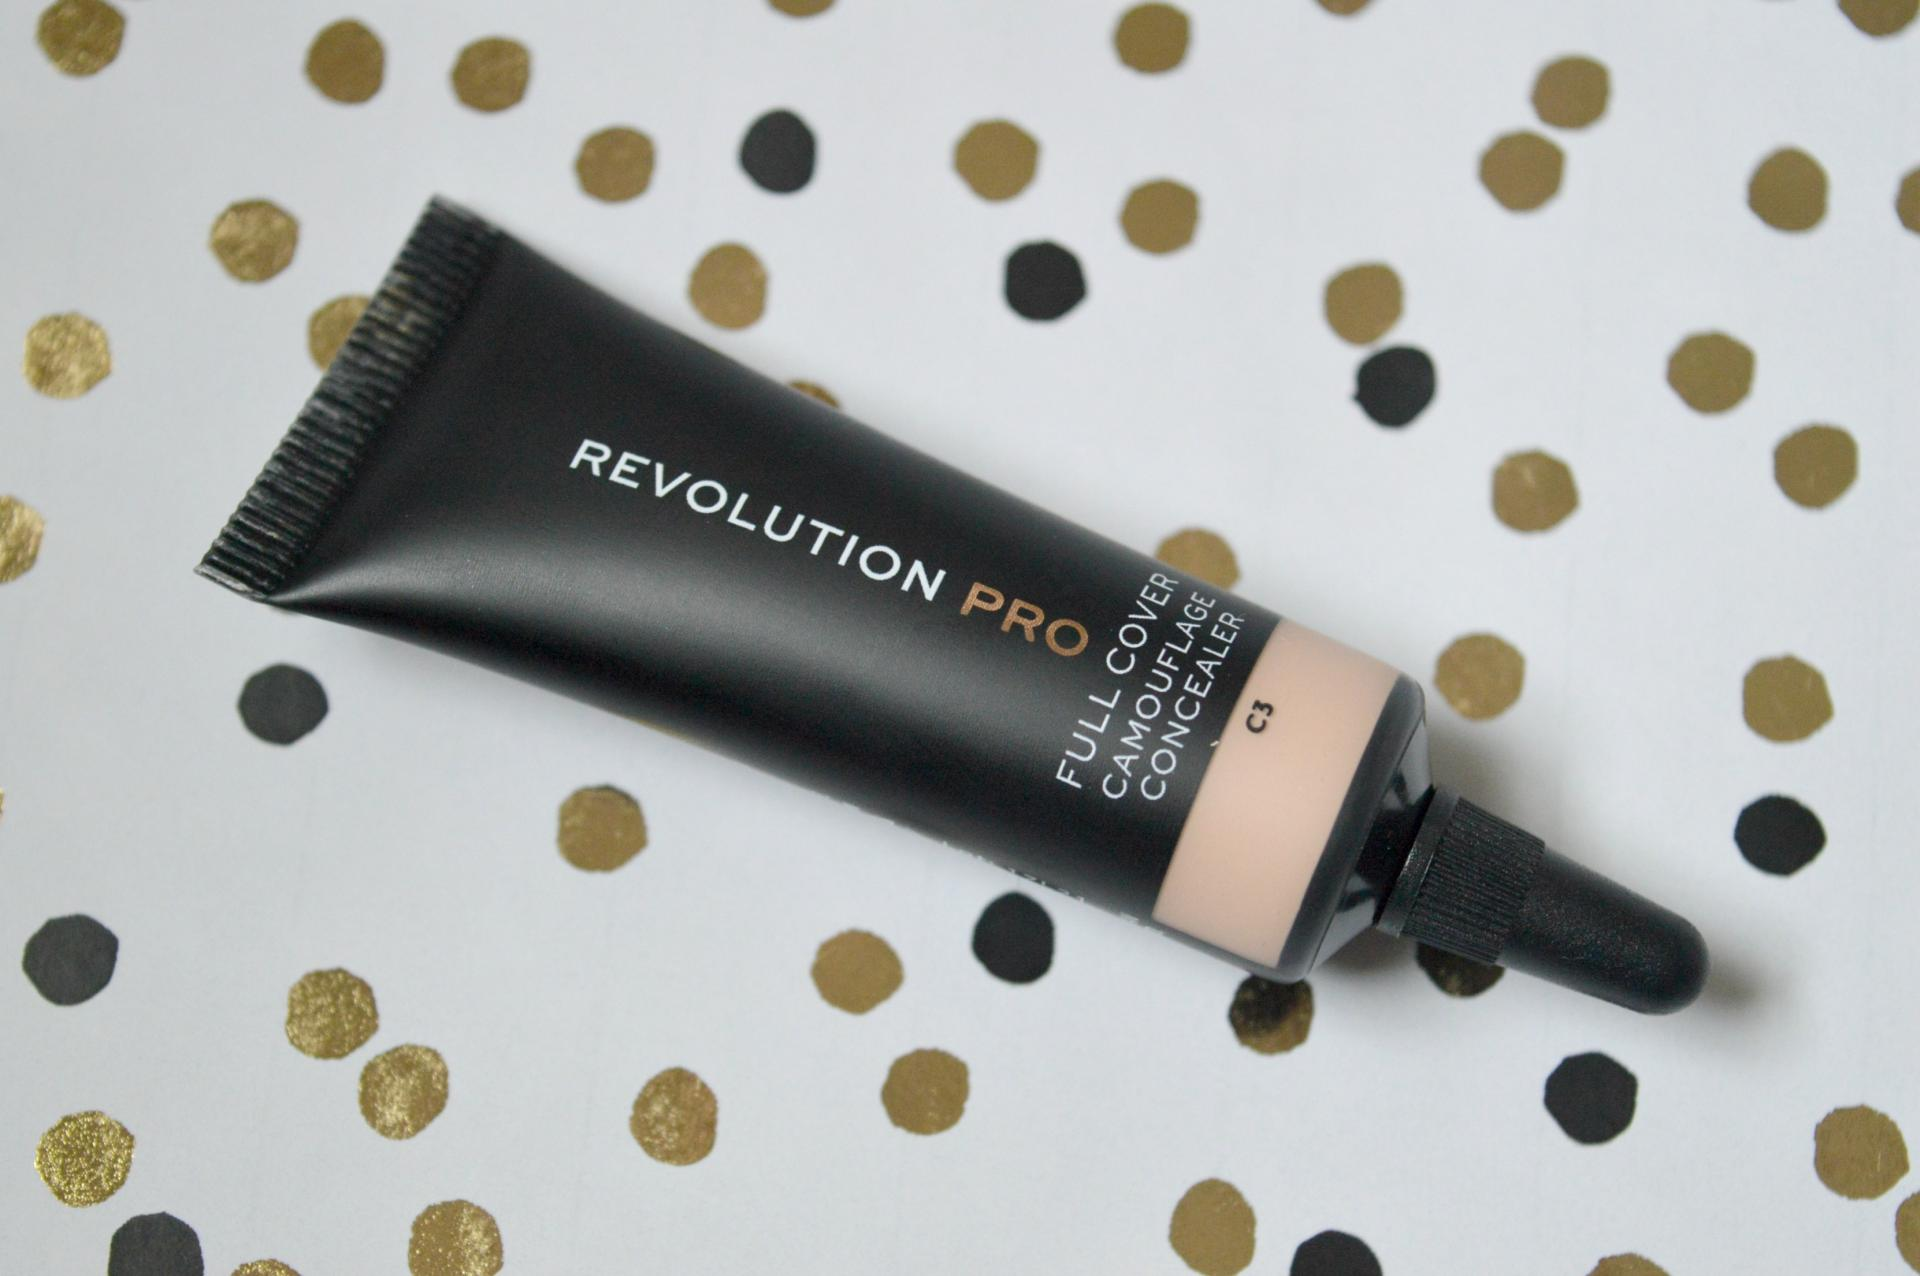 How To Get Flawless Skin With The Revolution Pro Camouflage Concealer